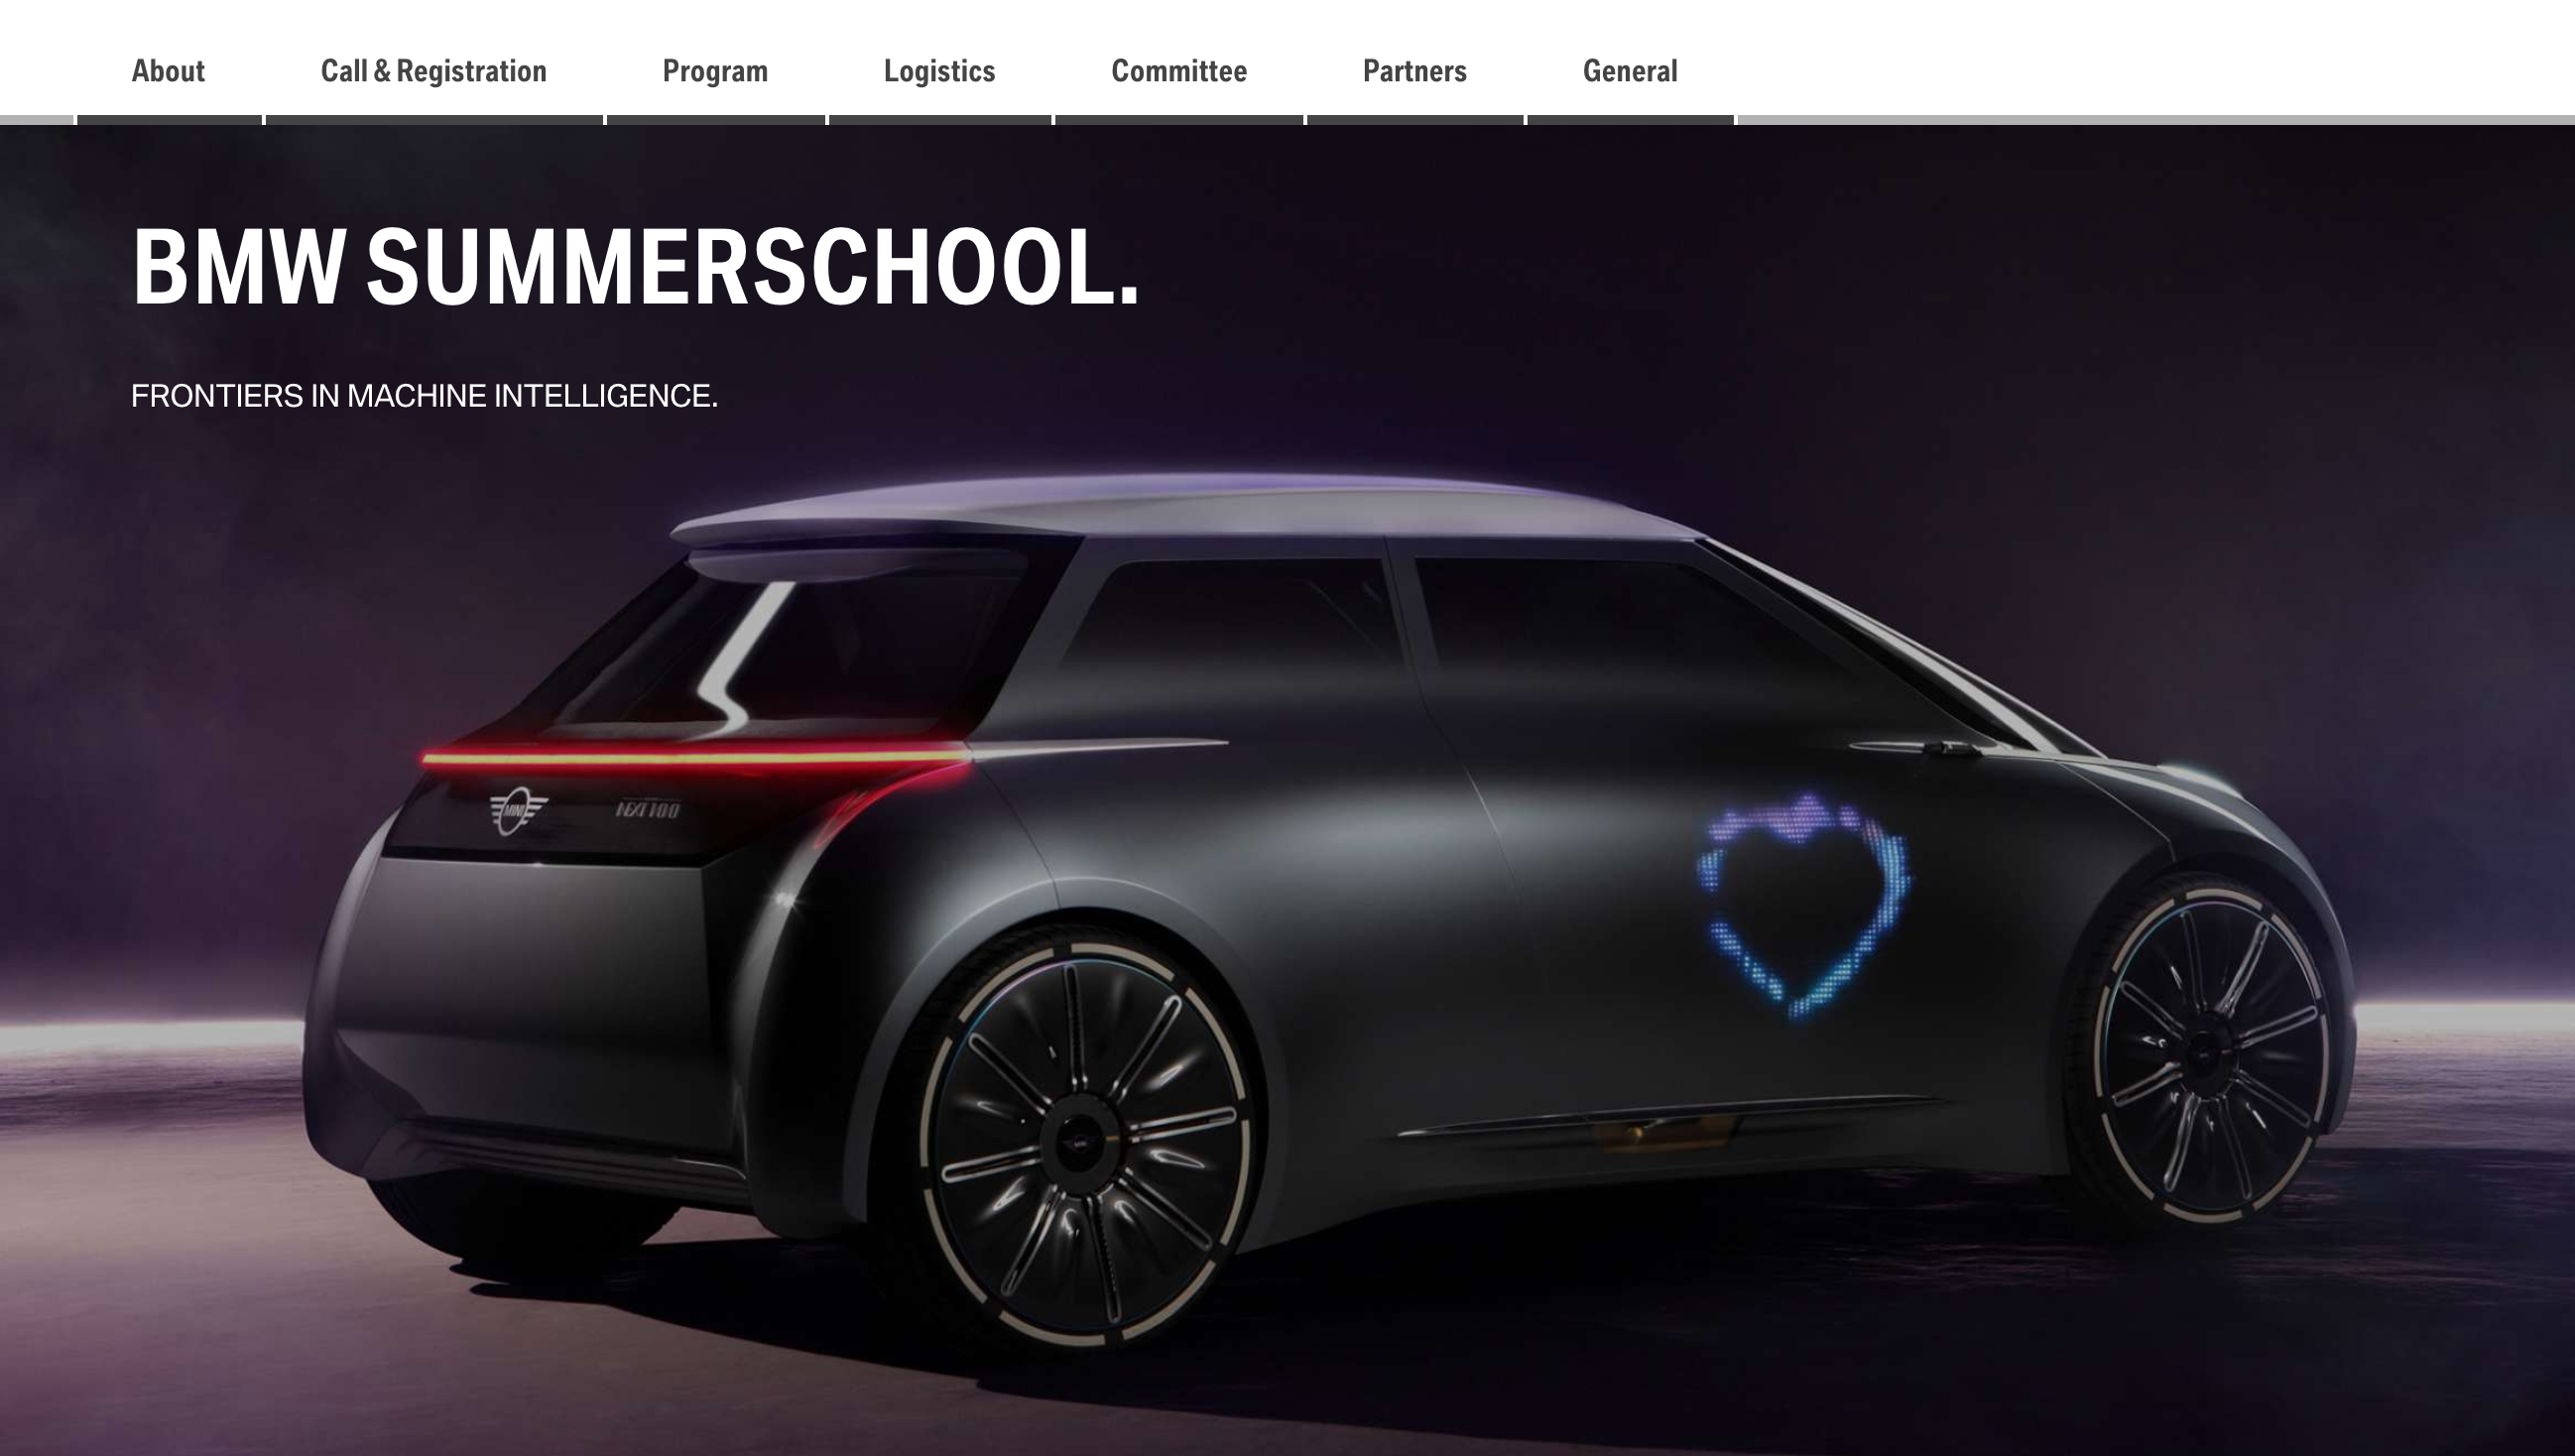 A portal designed to promote BMW's training services